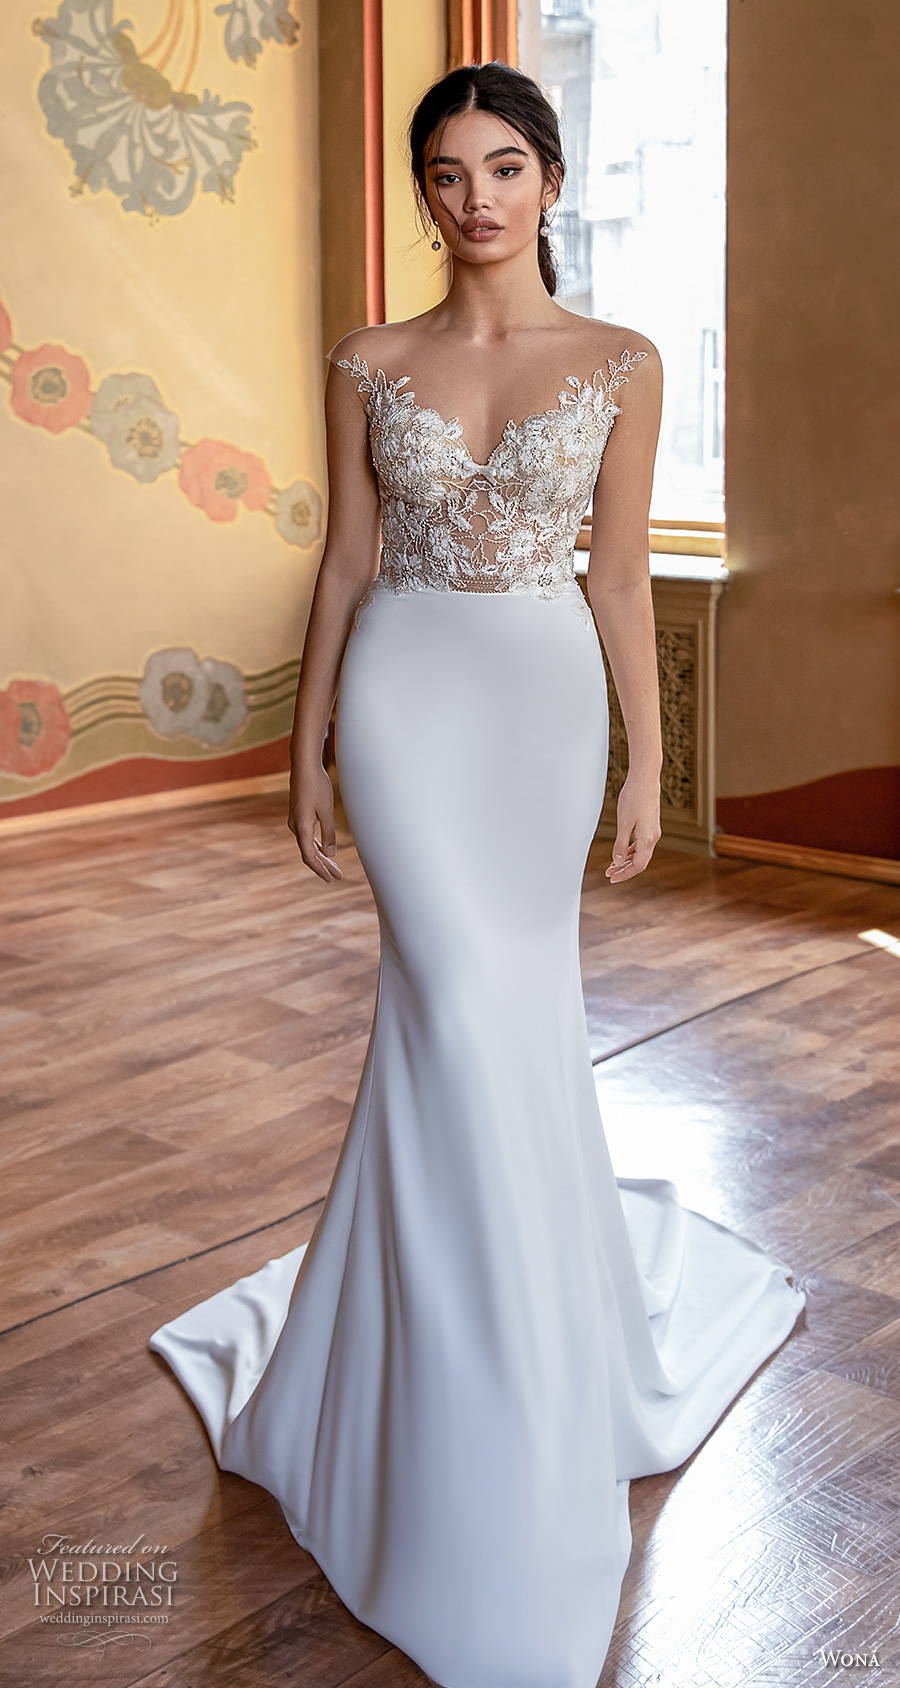 wona concept 2021 romance bridal cap sleeves v neck heavily embellished bodice elegant fit and flare wedding dress v back medium train (13) mv